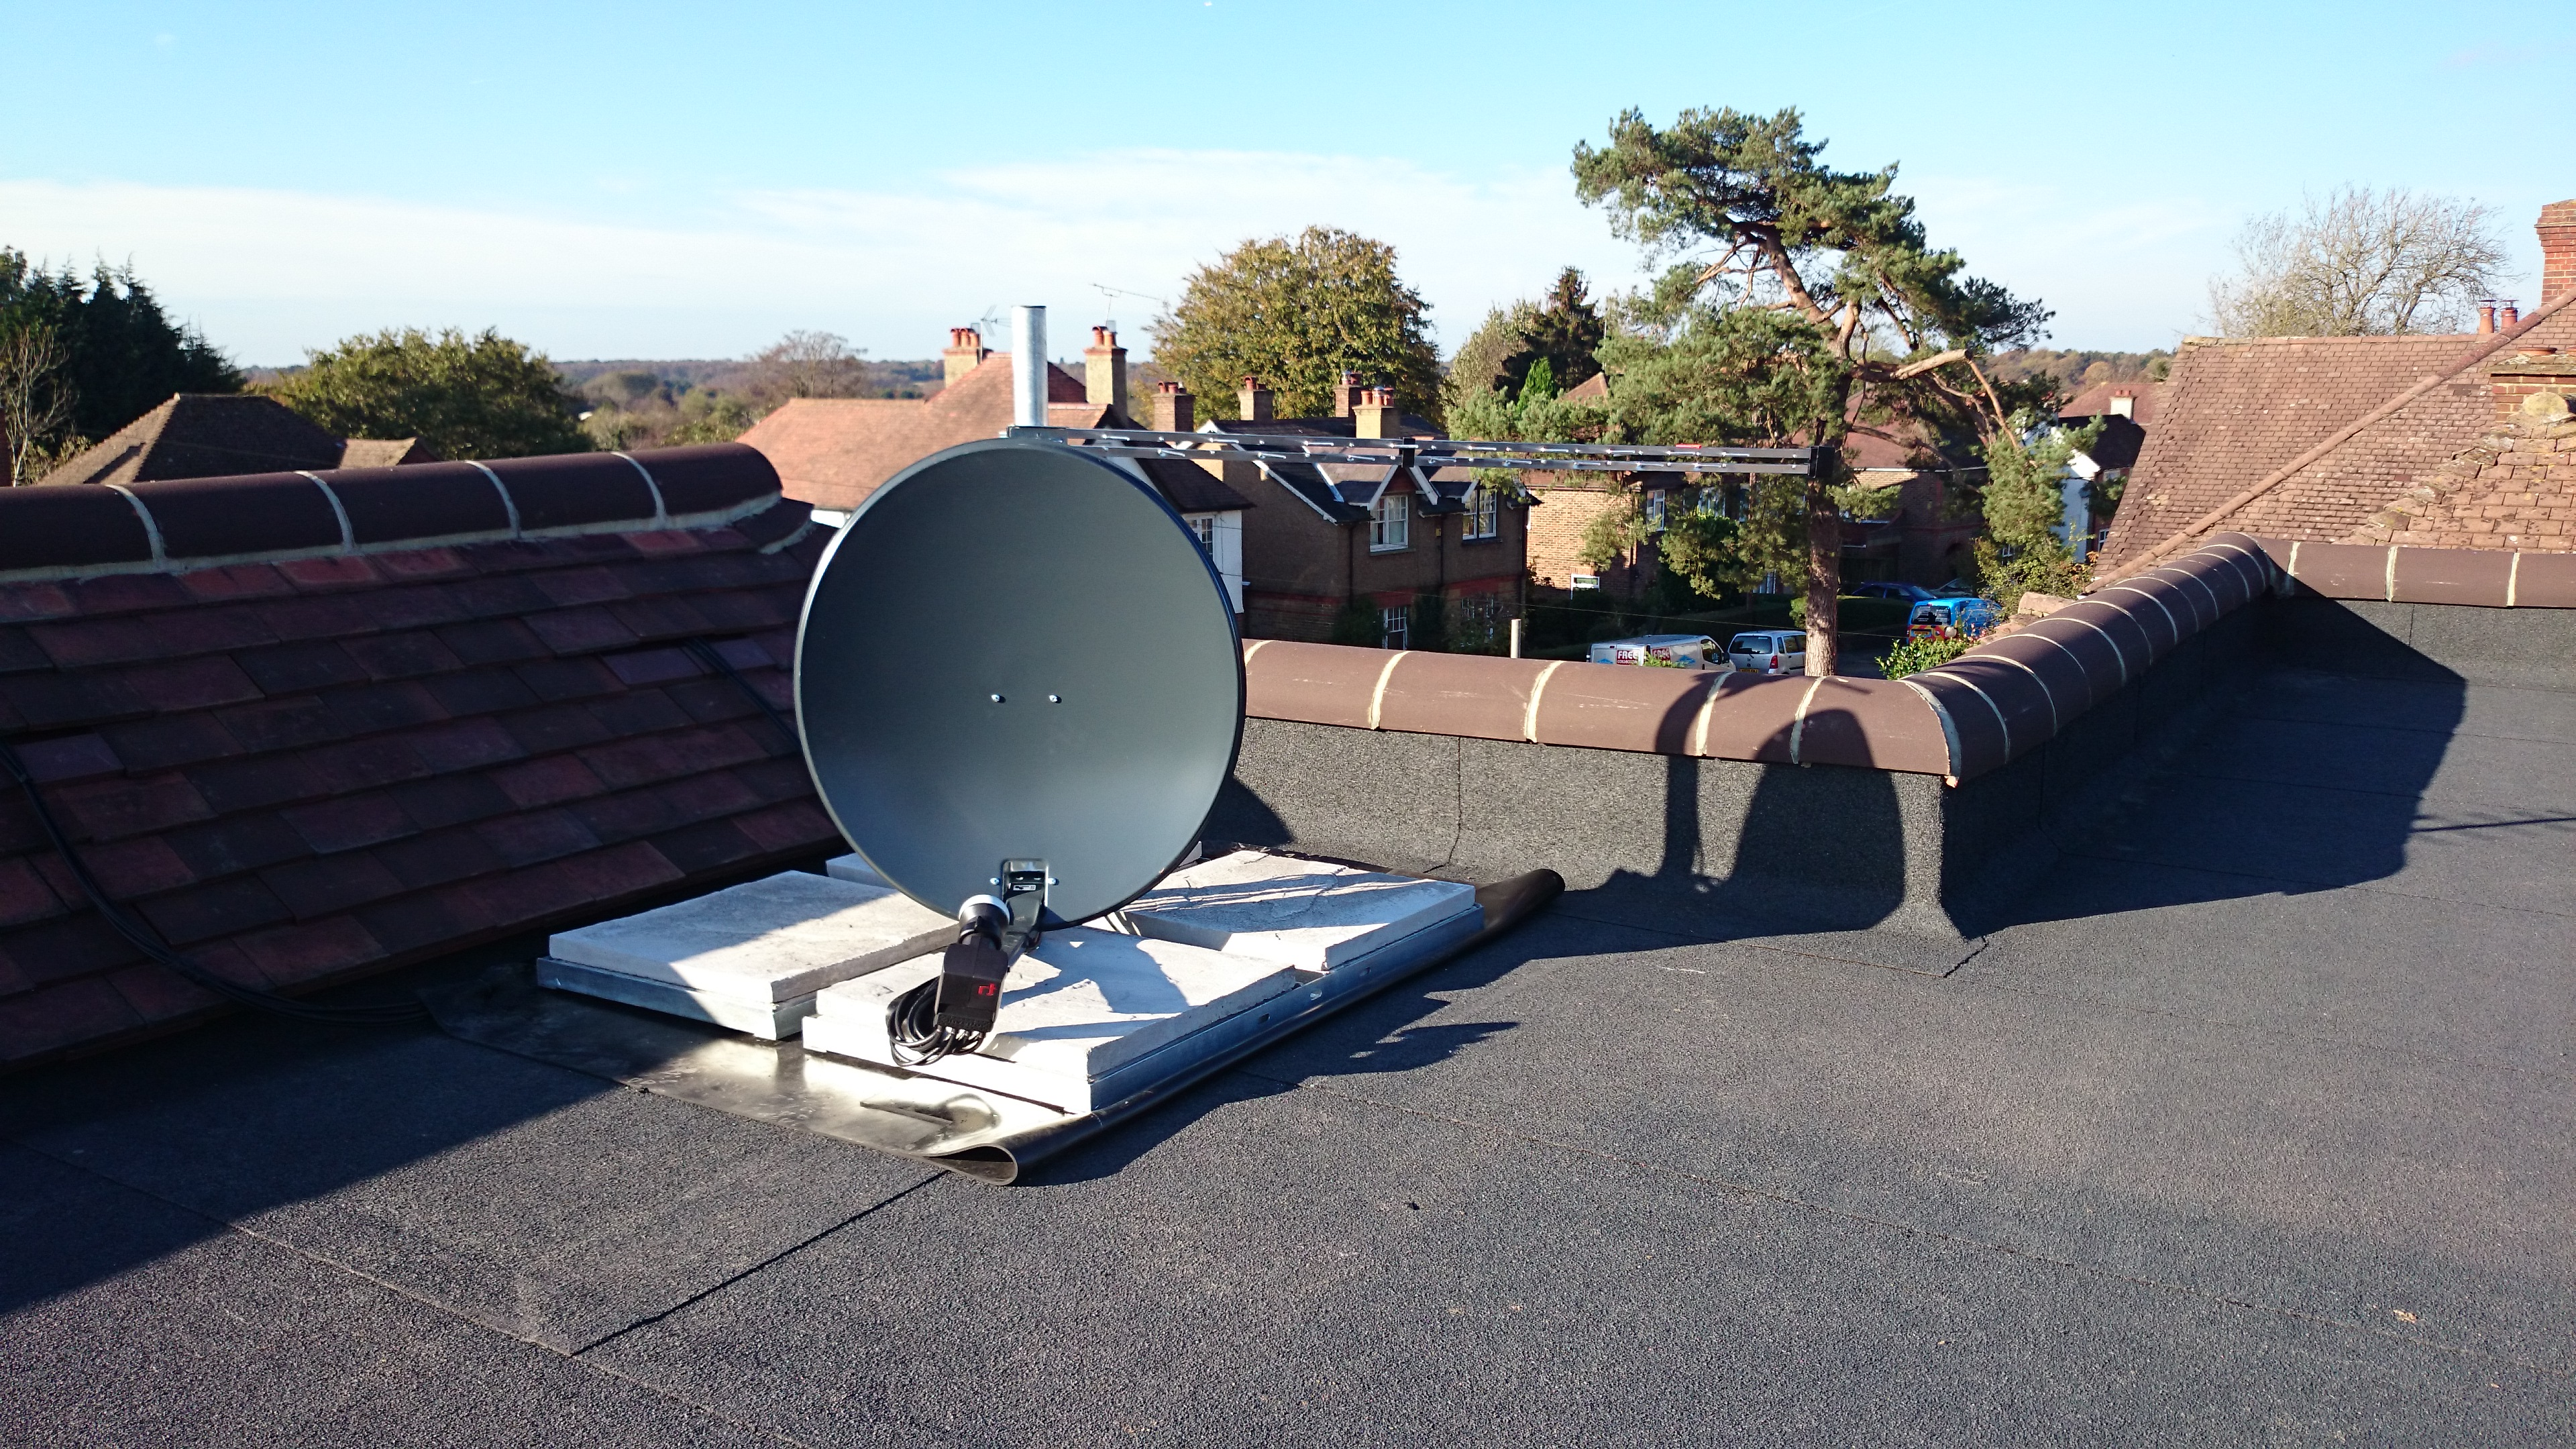 The client's brief was to have multiple SkyHD receivers and TV. Antennas not visible from street.